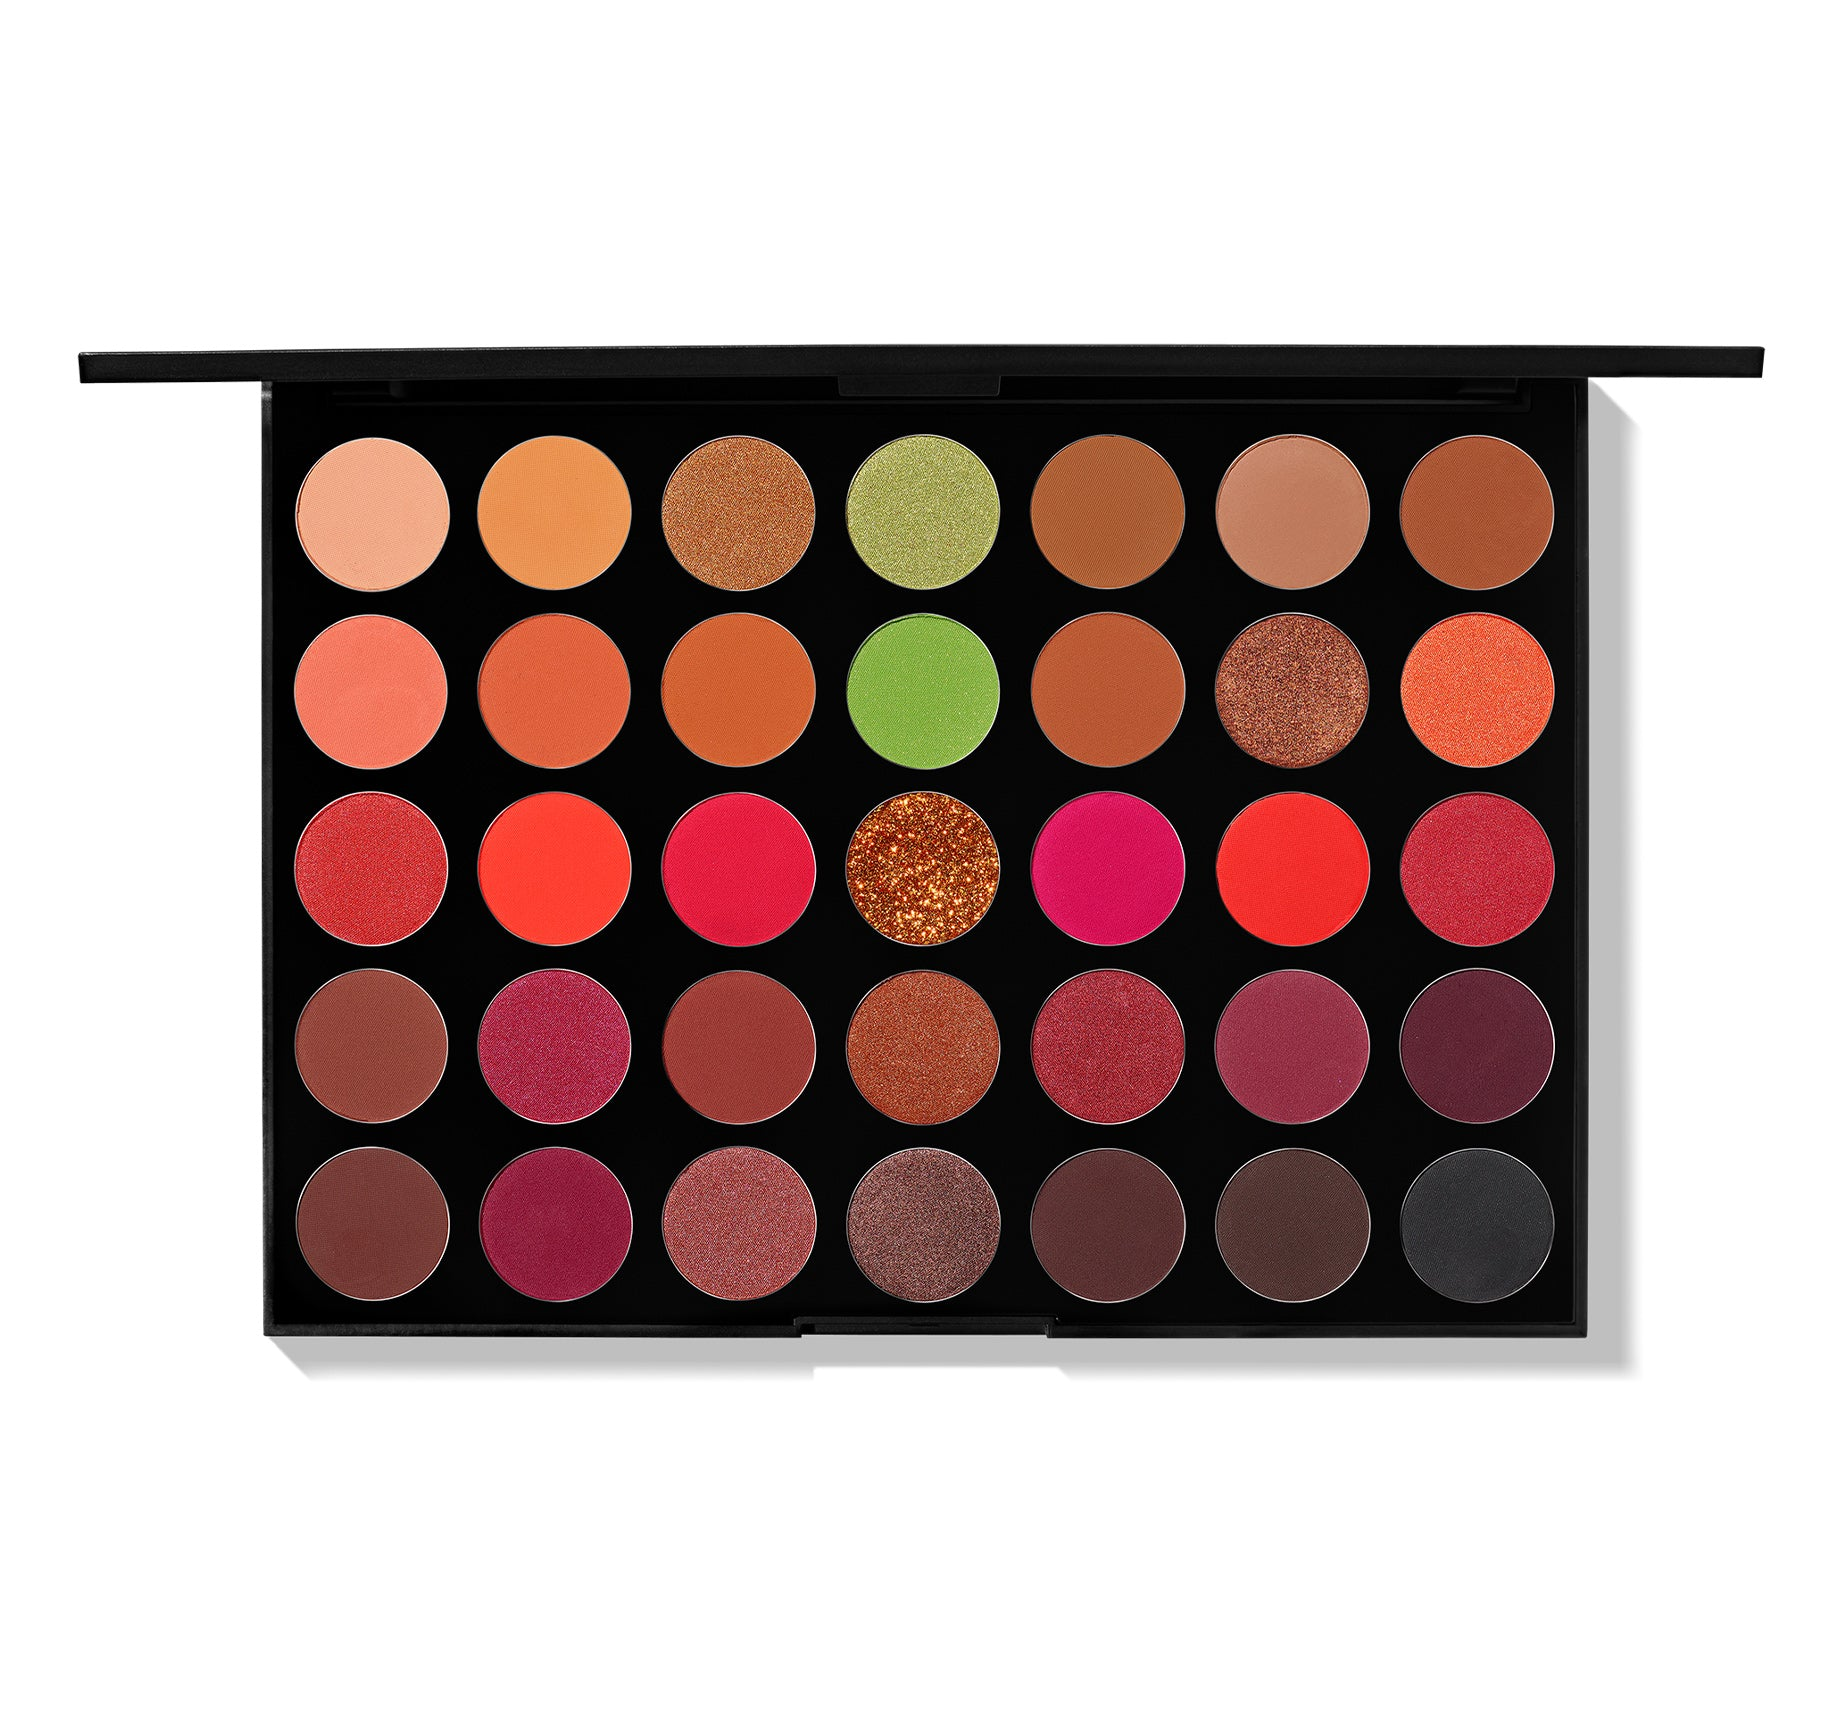 35O3 FIERCE BY NATURE ARTISTRY PALETTE, view larger image